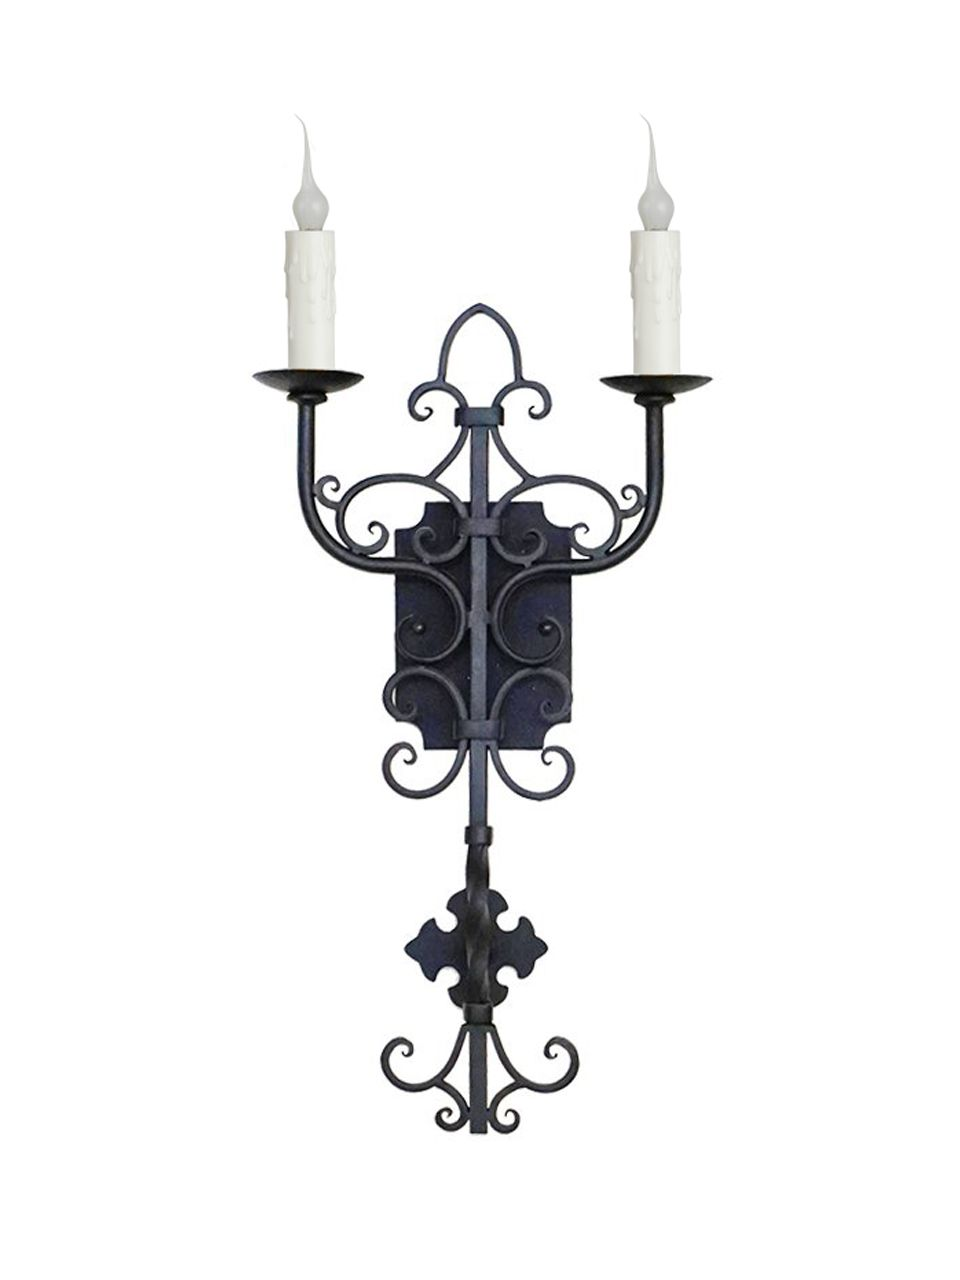 Sc 187 Two Light Wall Sconce Wall Lights Wall Sconce Lighting Wall Sconces